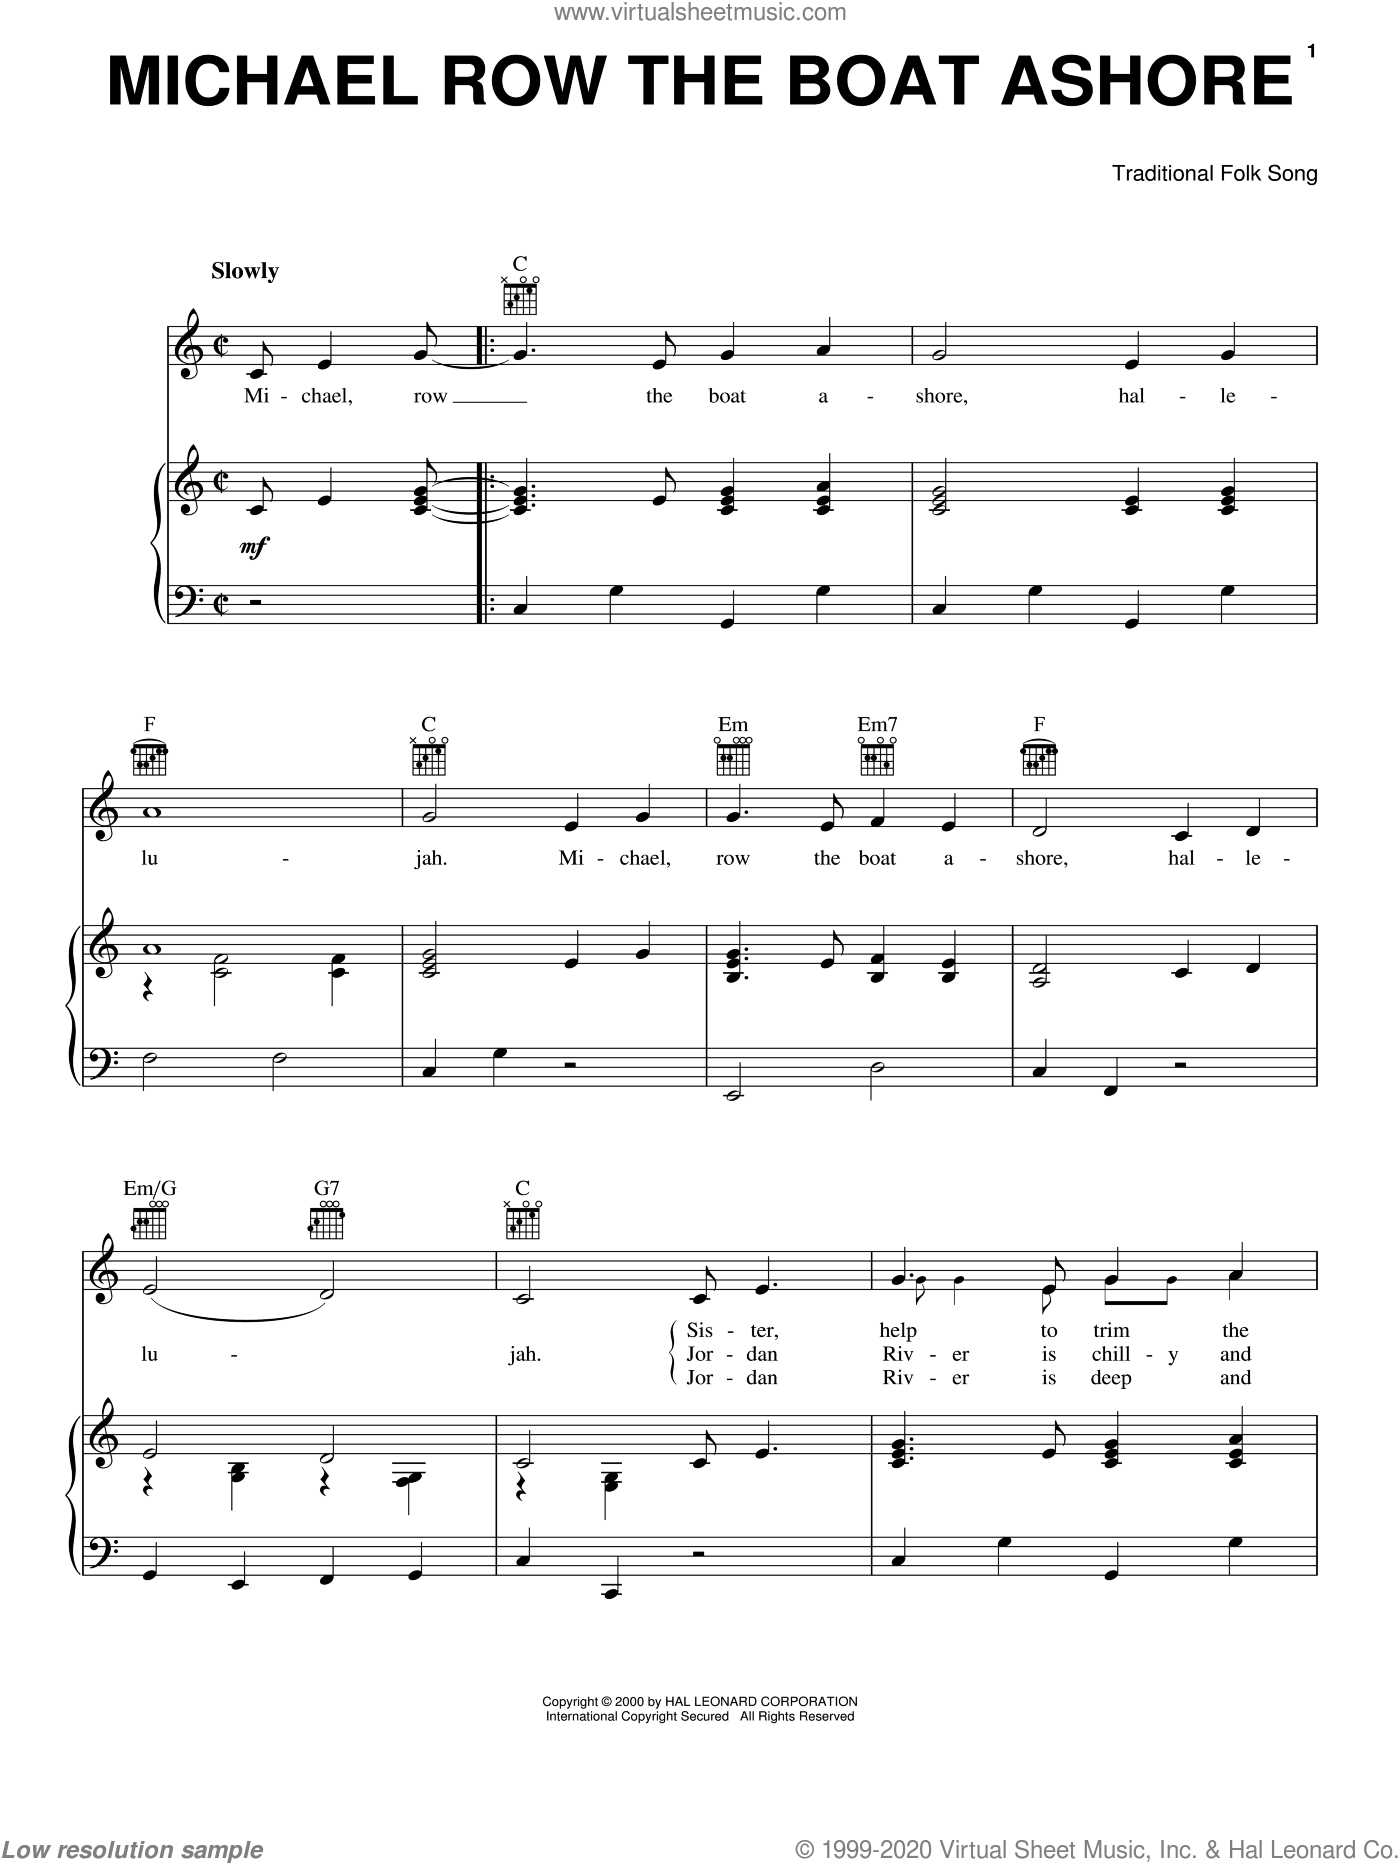 Michael Row The Boat Ashore sheet music for voice, piano or guitar, intermediate skill level